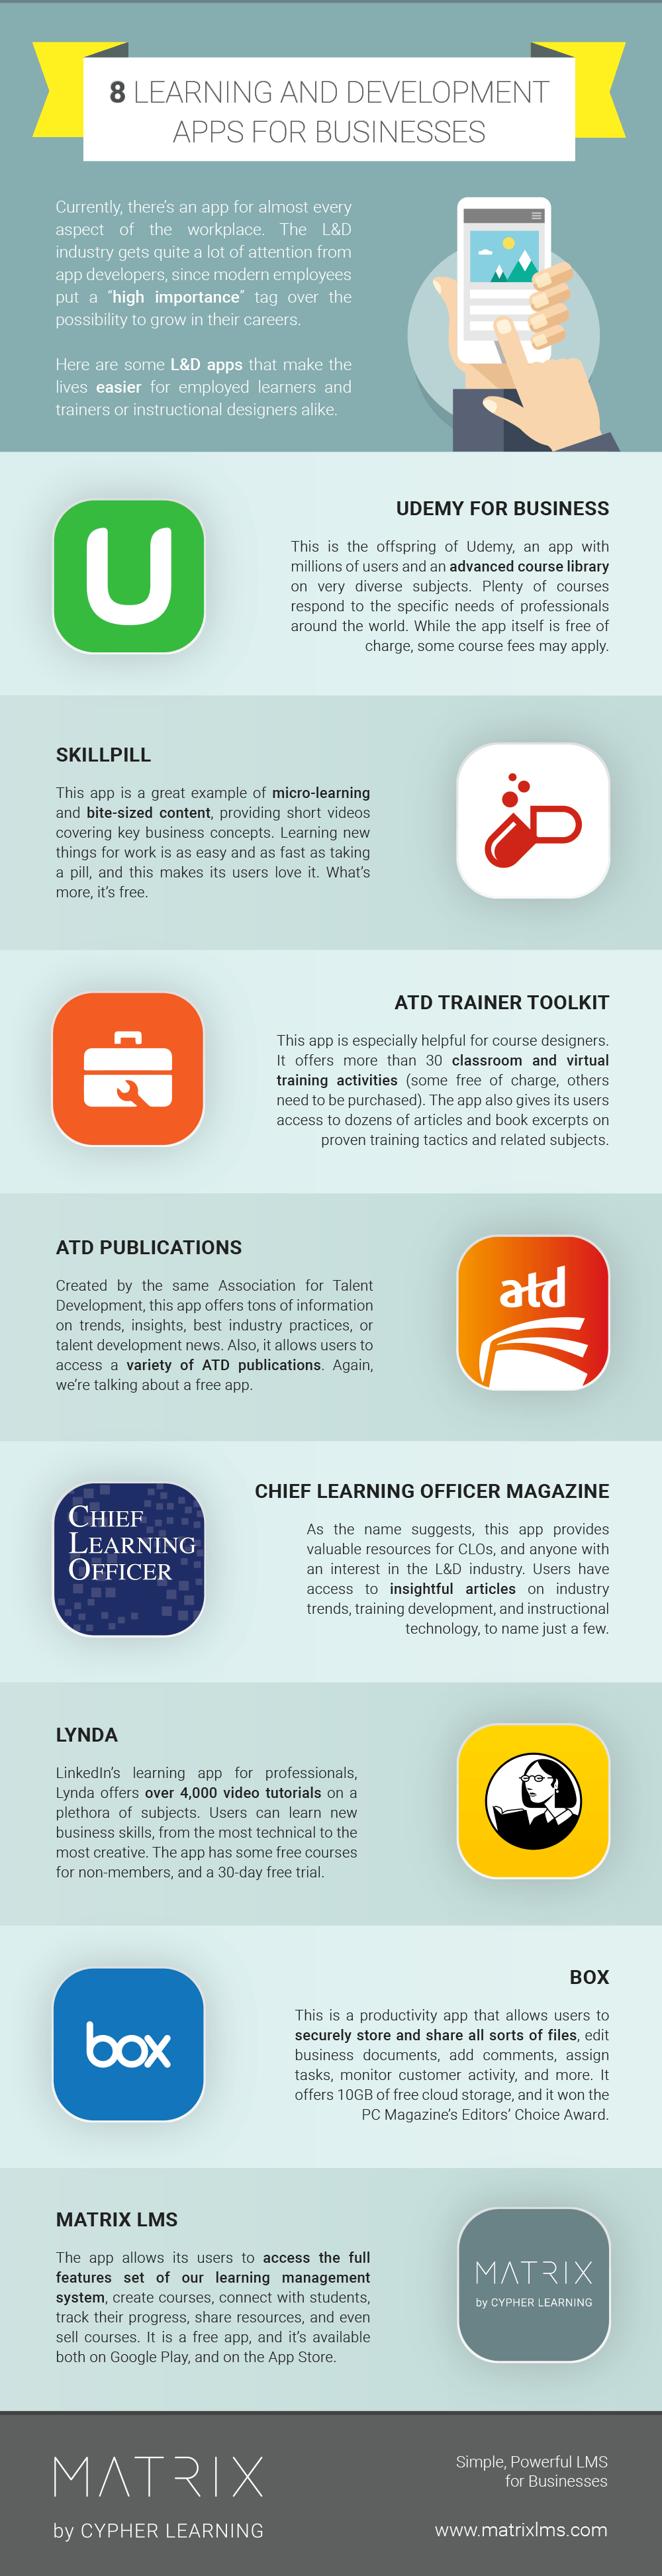 8 Learning and Development Apps for Businesses Infographic